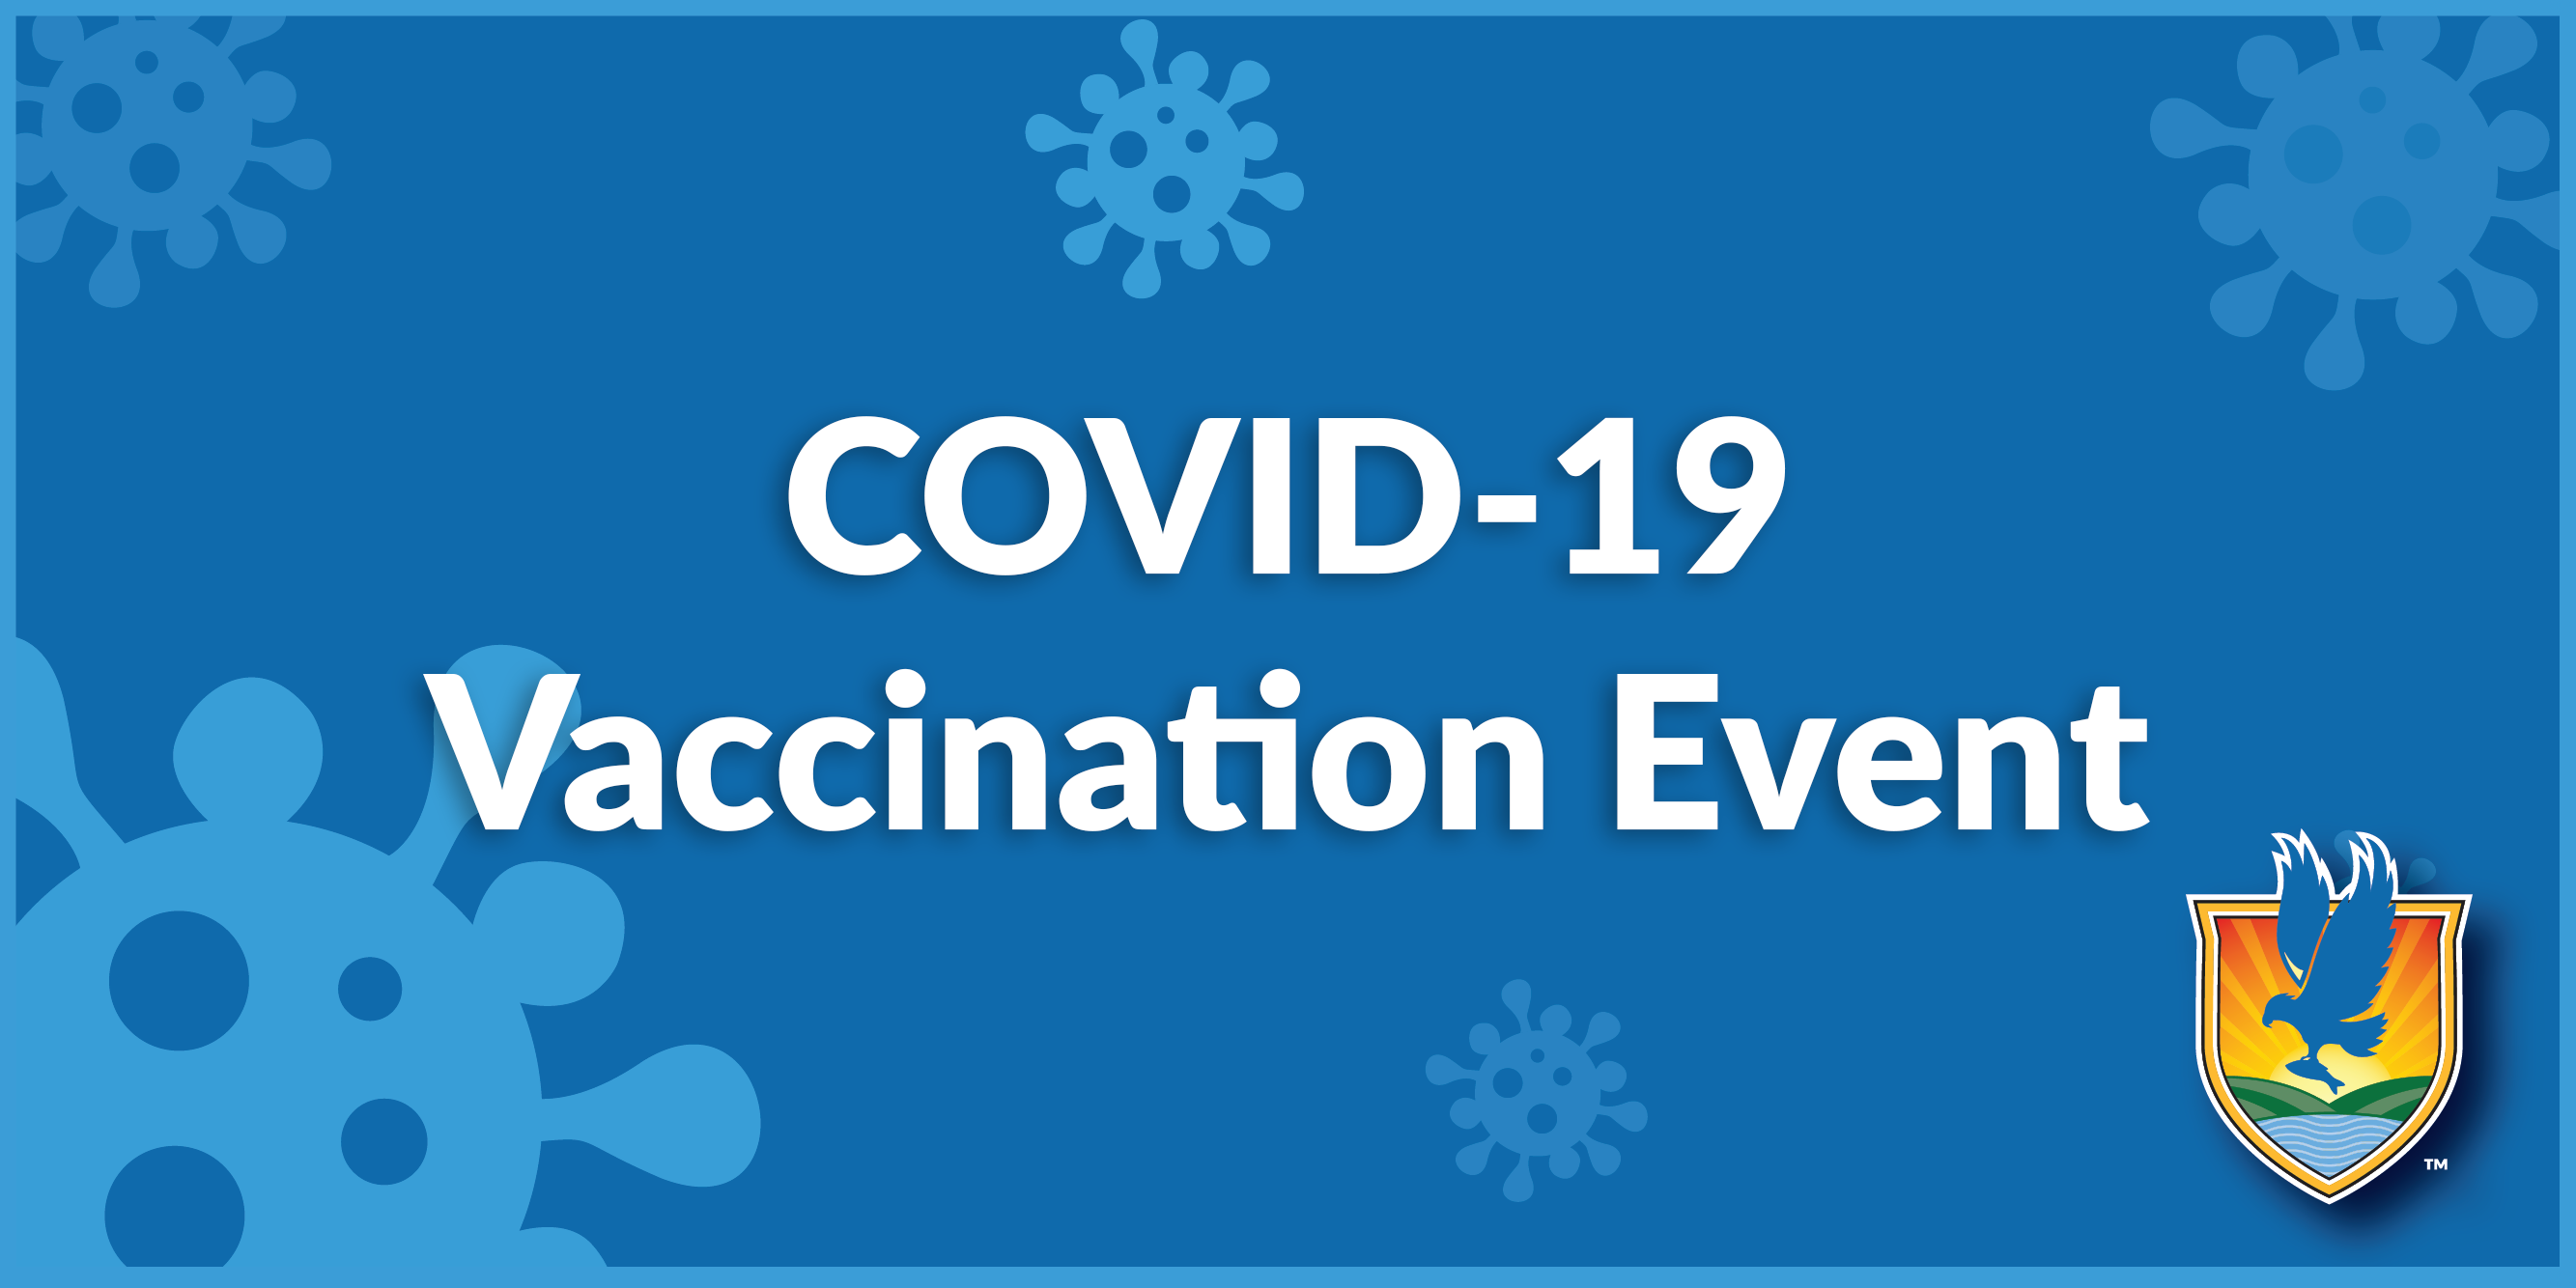 LSSC offering COVID-19 vaccinations to students and employees